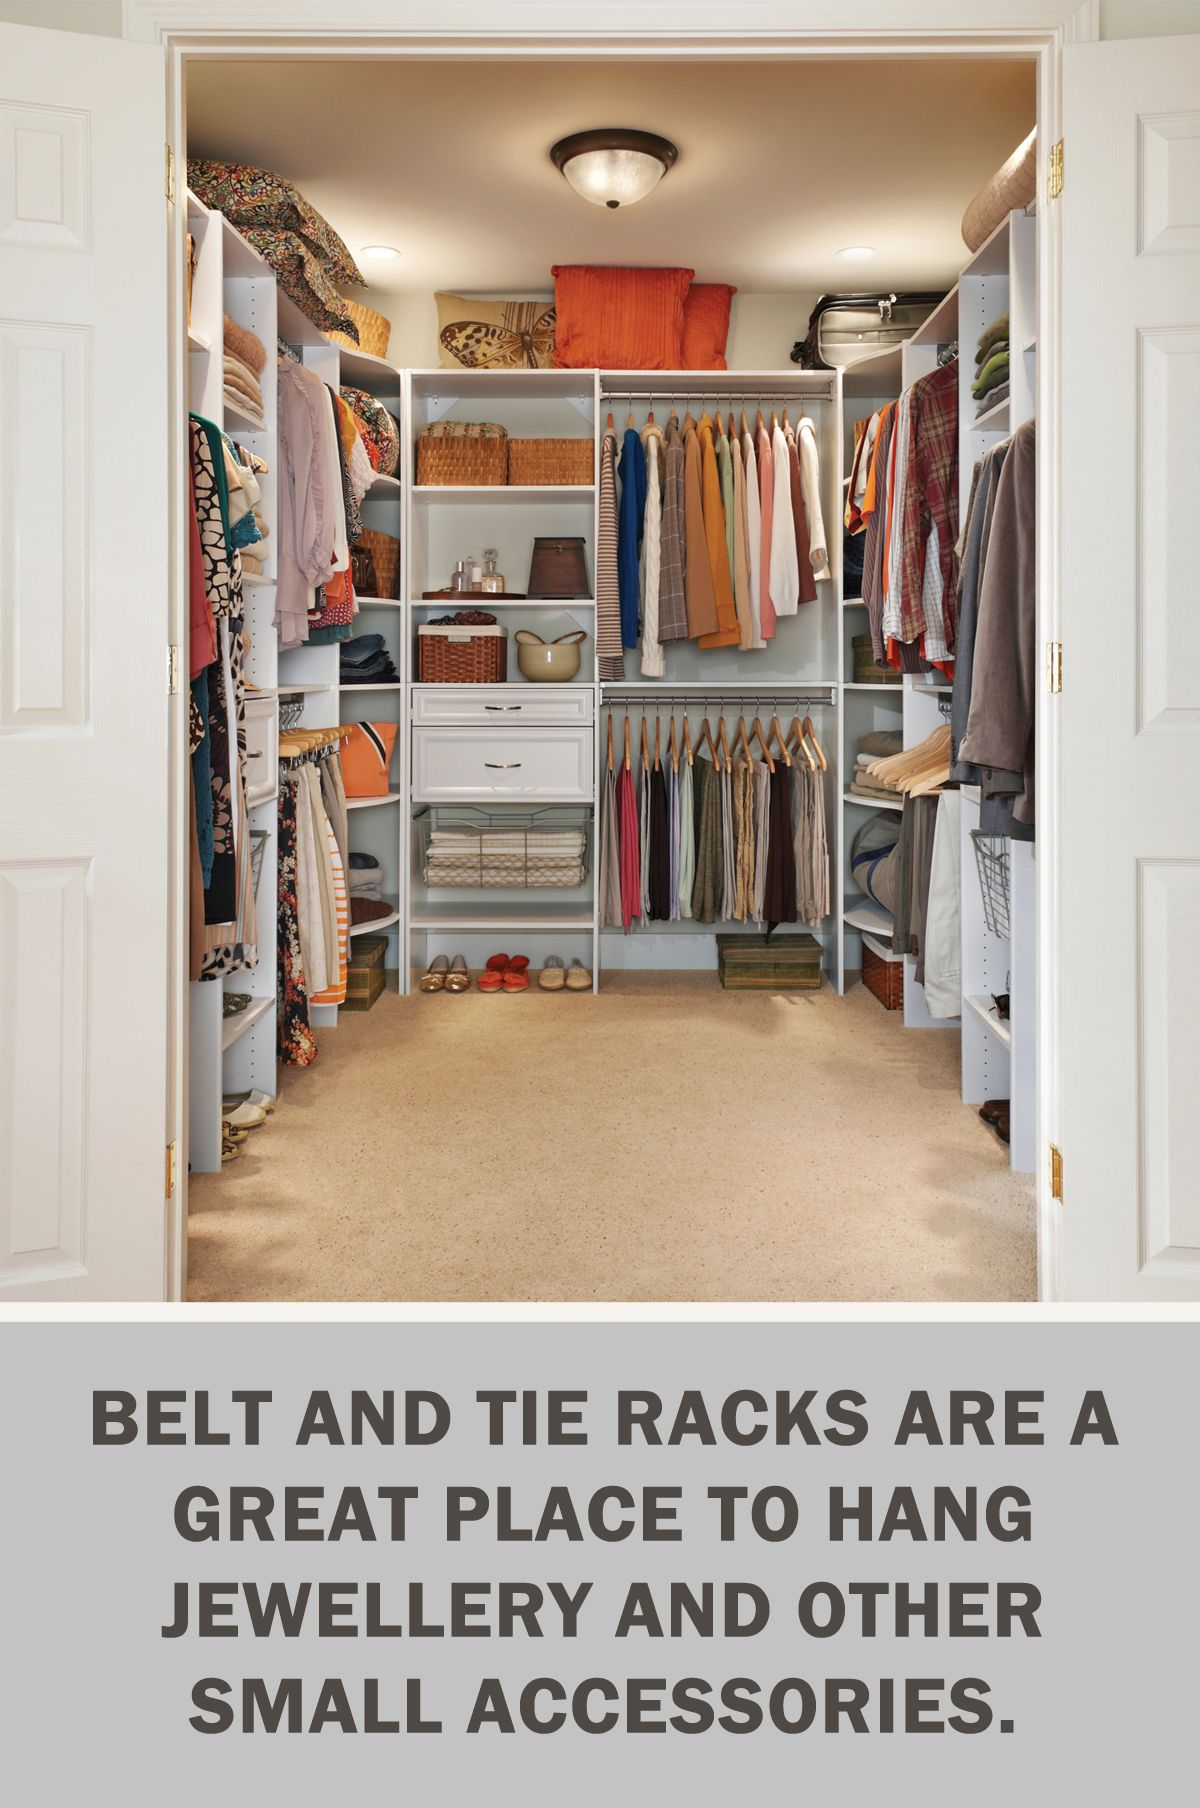 #LetsGetOrganized With @closetmaid: Belt And Tie Racks Are A Great Place To  Hang